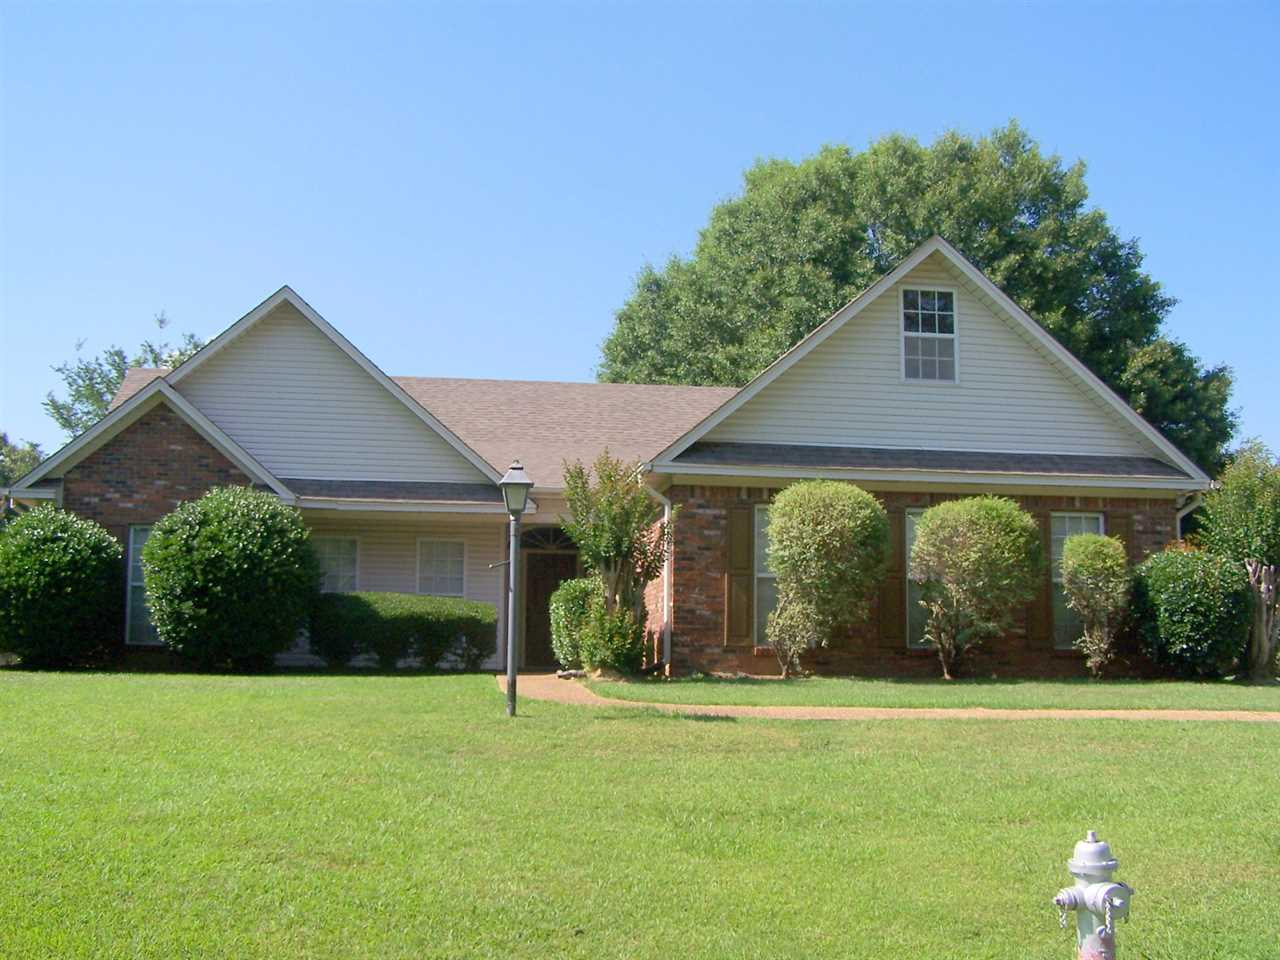 121 arrow dr clinton ms 39056 full circle agens real estate rh fullcircleagents com